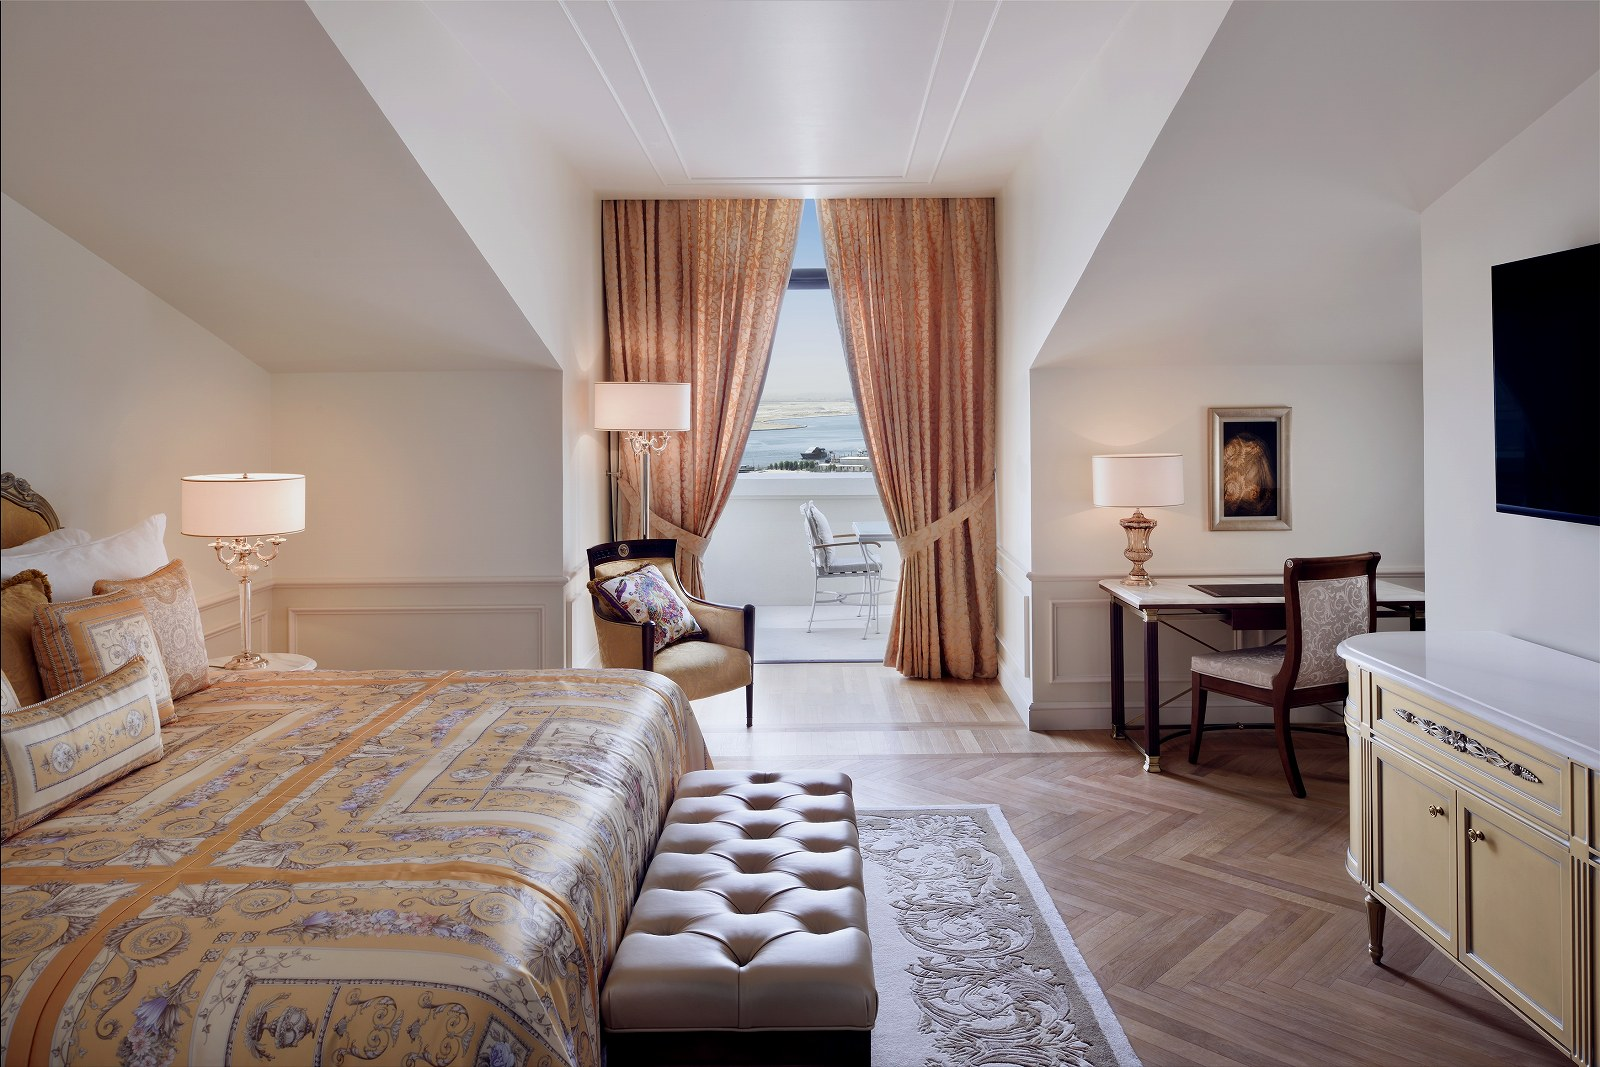 Premier_Versace_Club_Room_(City_View)_-_Bedroom_with_balcony_20191220133945fea.jpg